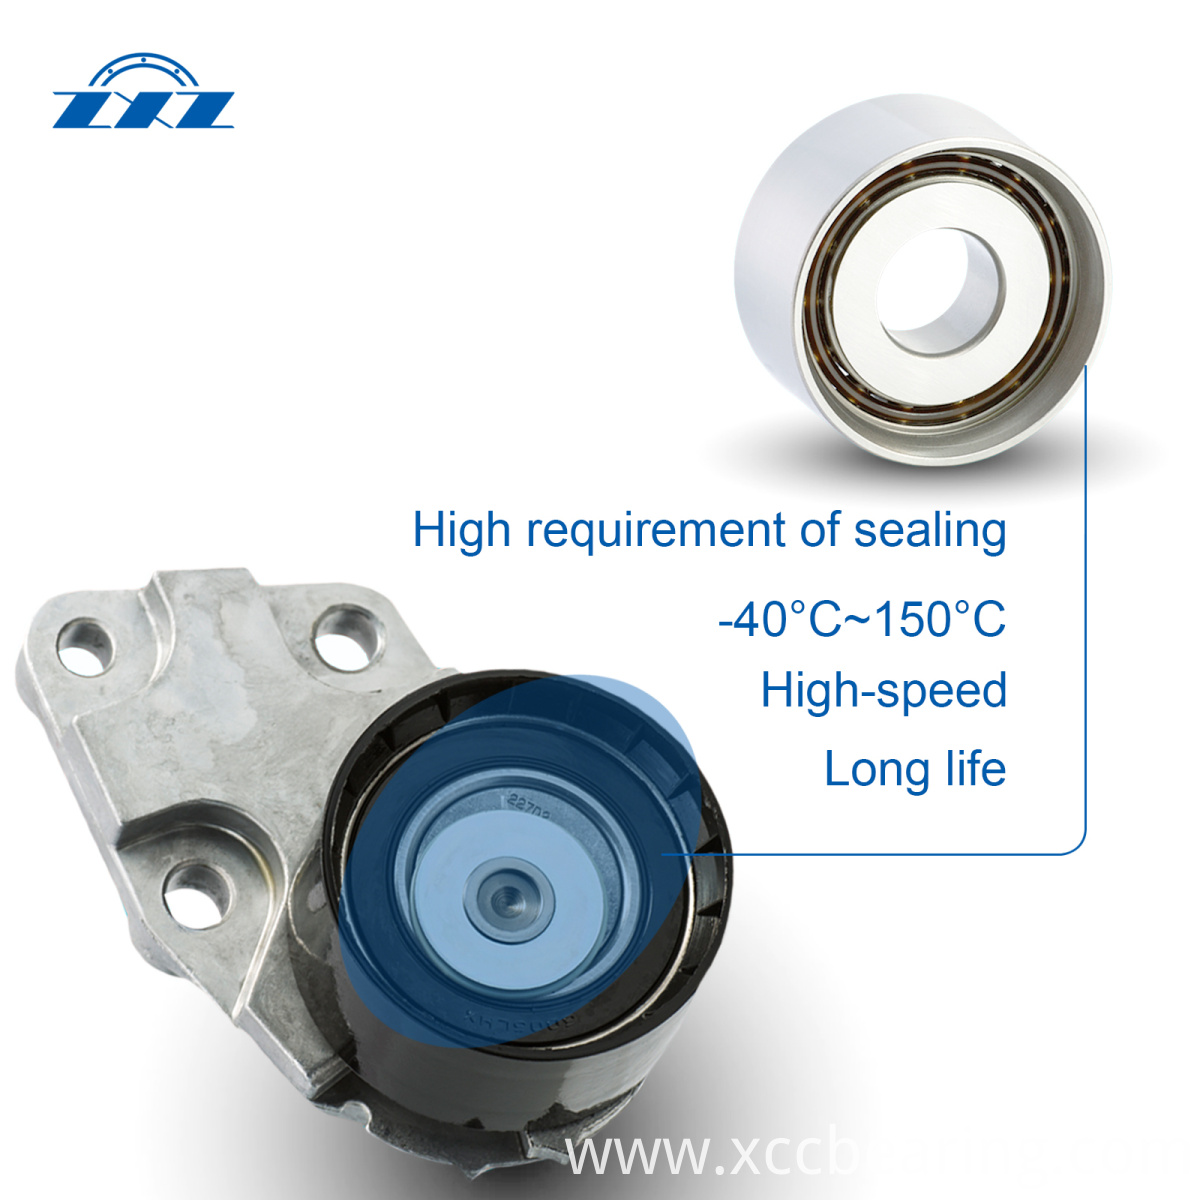 Tensioner bearing performance